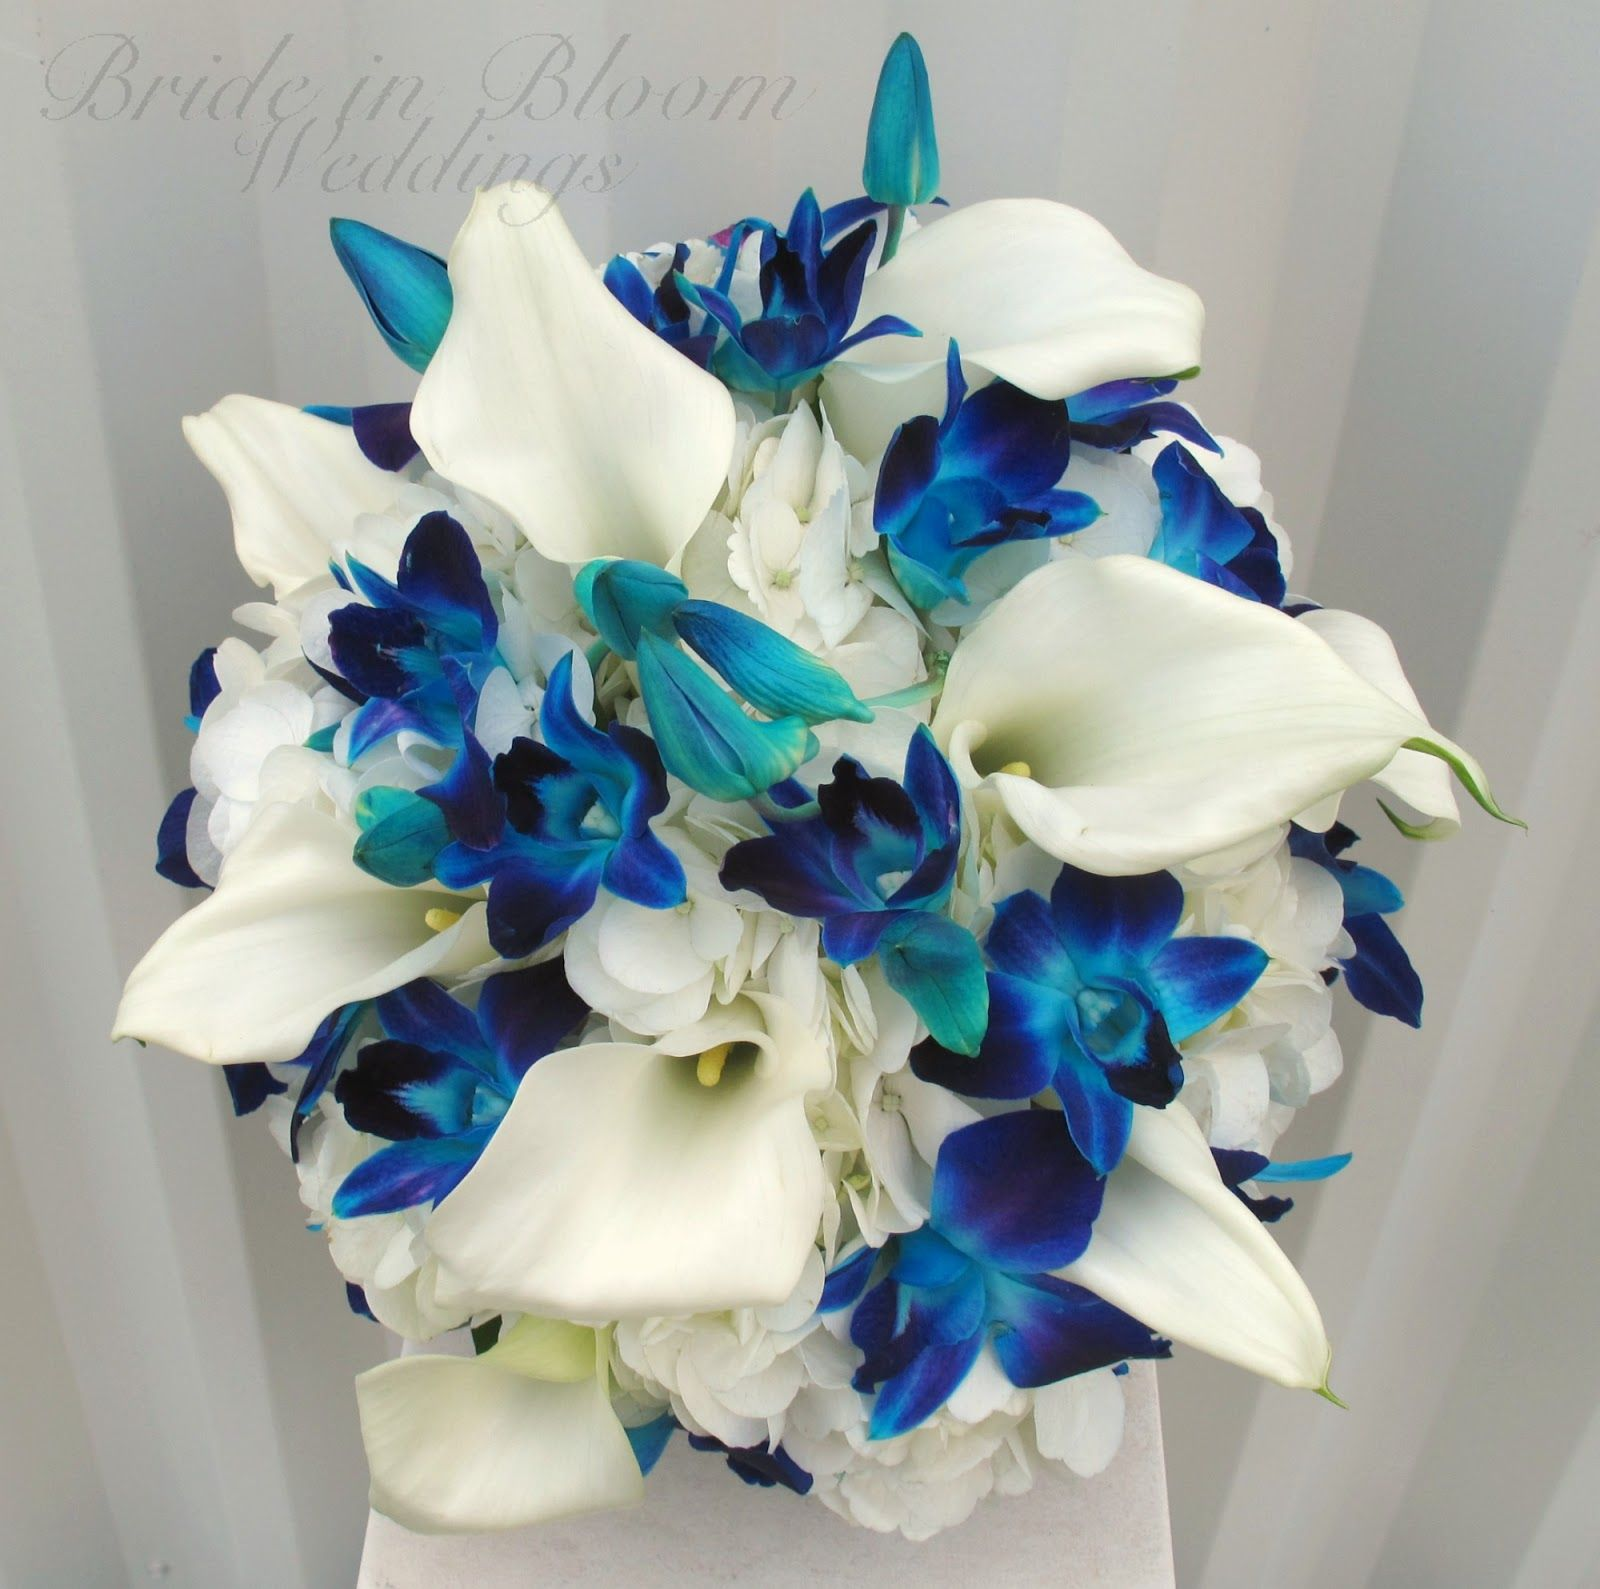 So lovely blue dendrobium orchids with white mini calla lilies